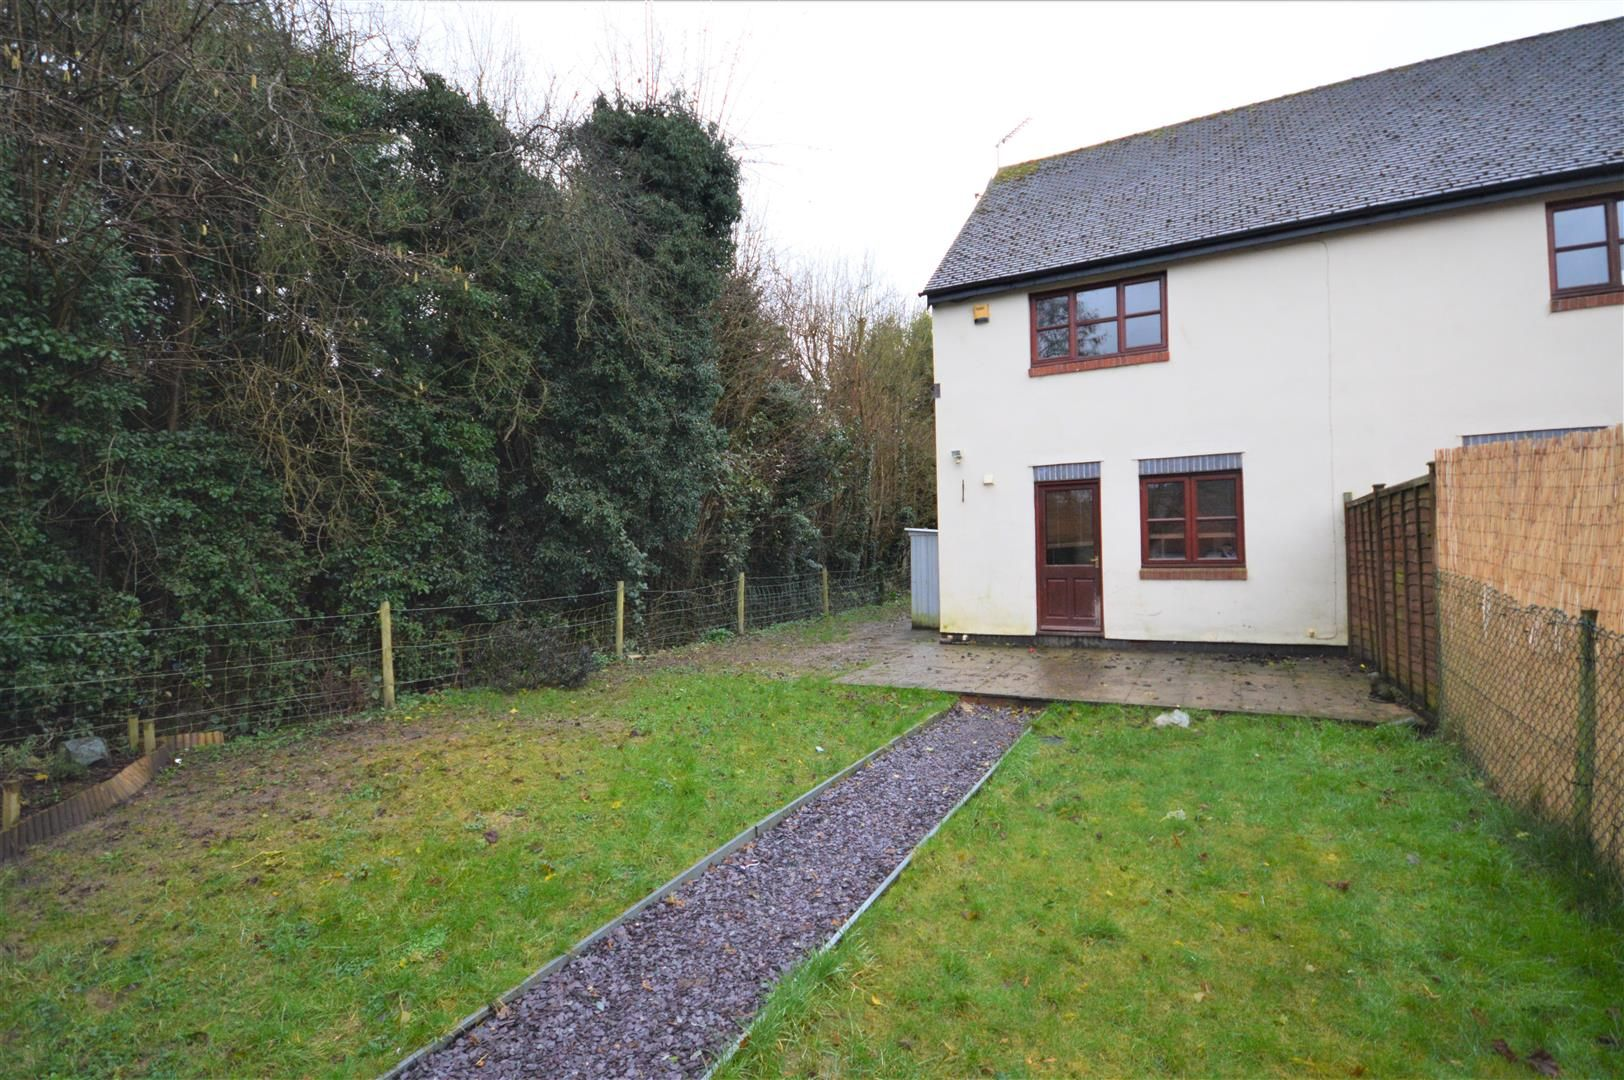 2 bed end-of-terrace to rent in Wigmore 4